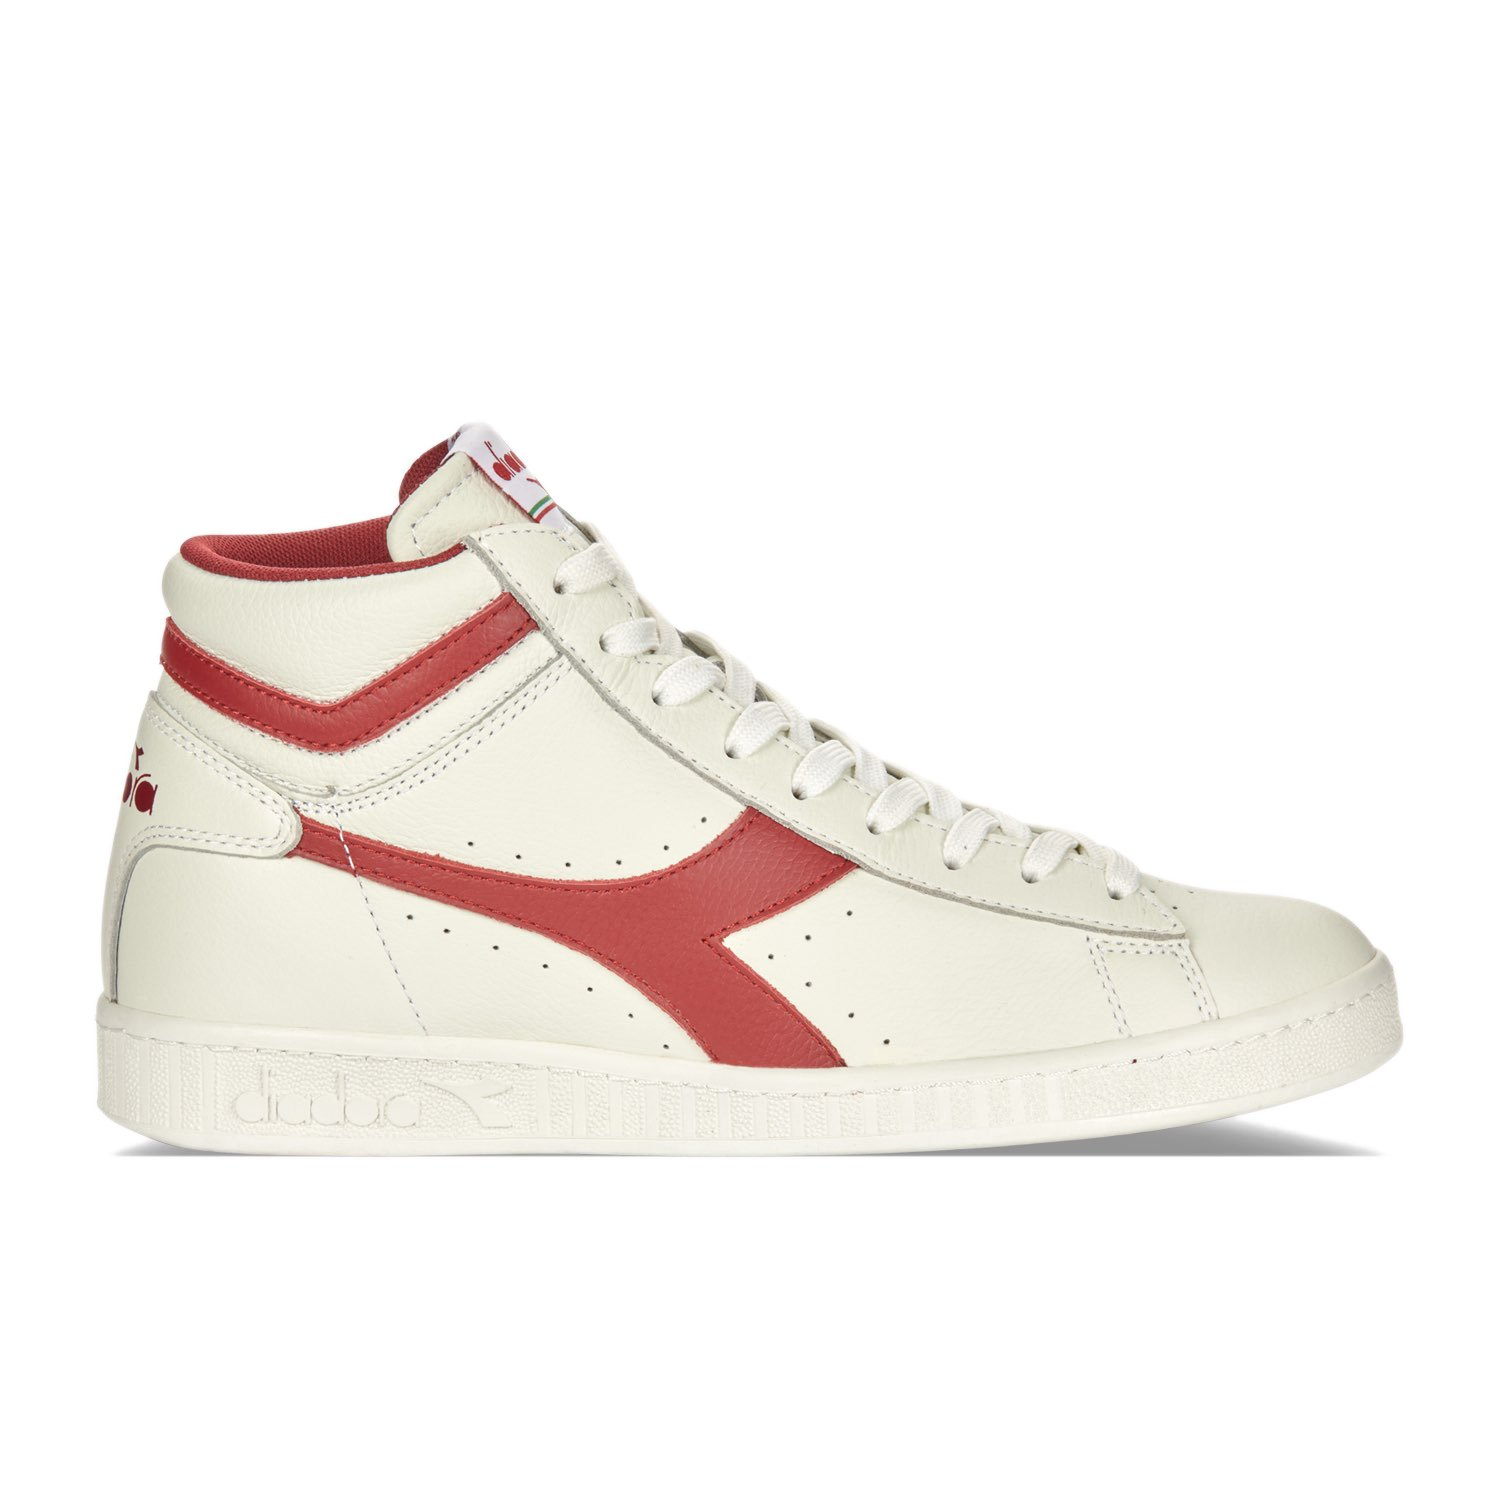 Diadora Unisex-Erwachsene Game L High Waxed Pumps  EU 38 - US 7 - UK 5 (cm 235)|C6313 - WEISS-ROT-WEISS PEPPER